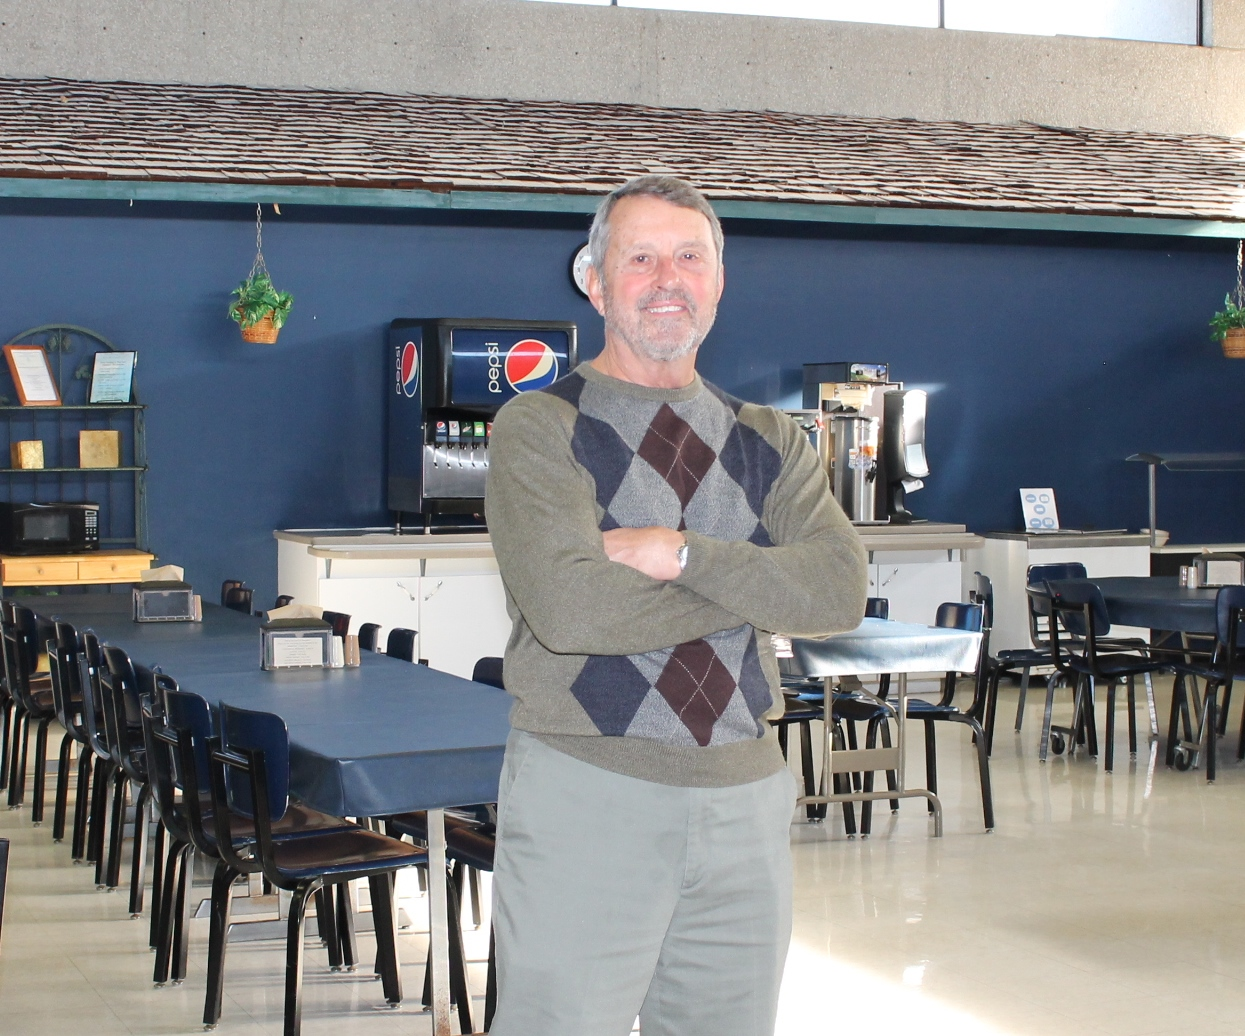 Allen President John Masterson in the college cafeteria, which was originally designed for a fraction of the diners it serves each meal.